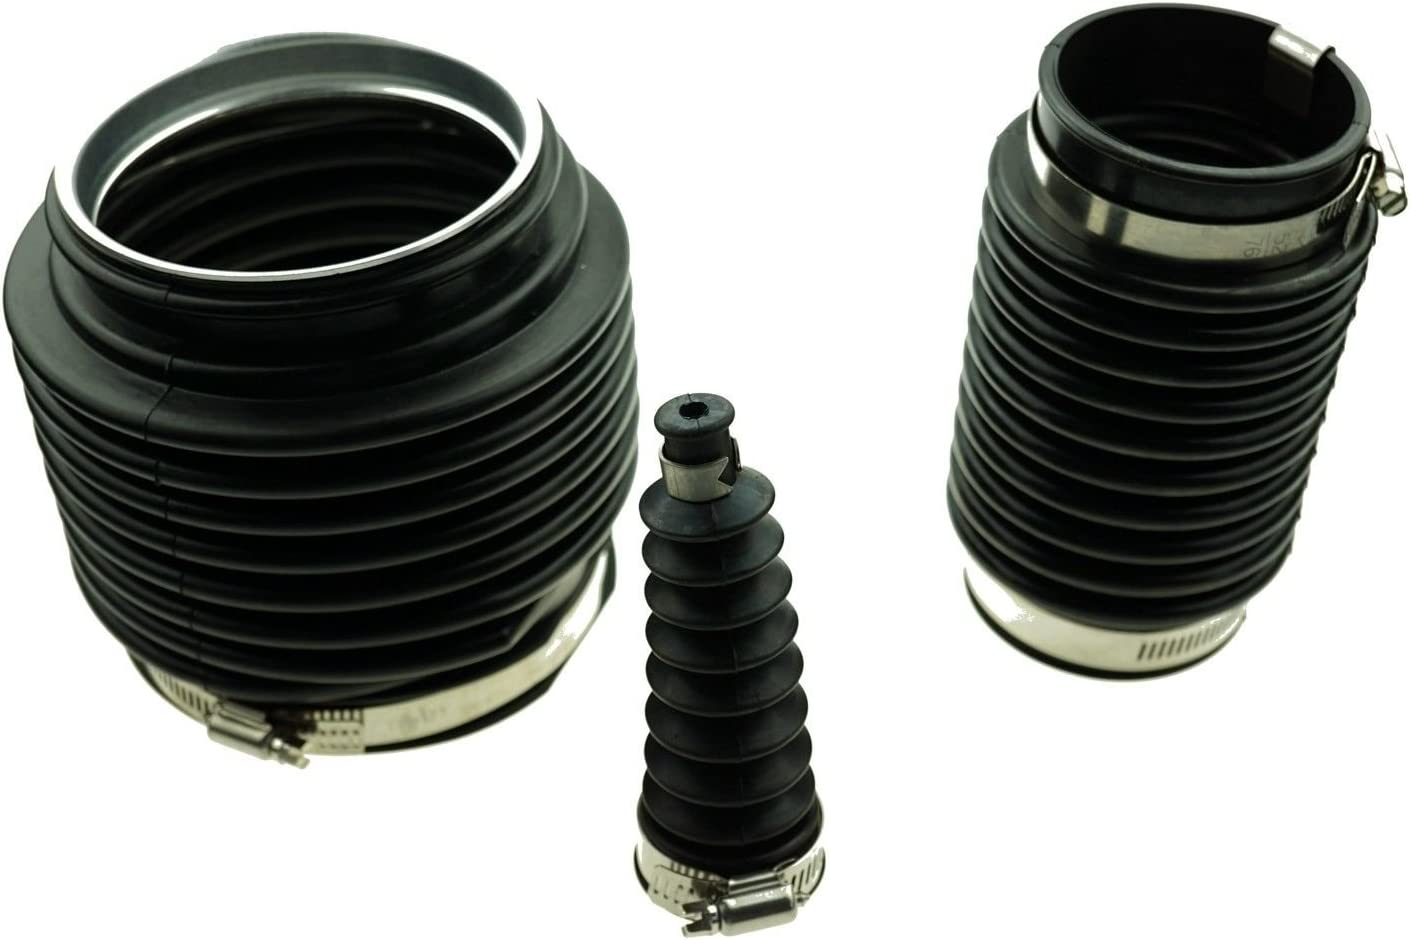 Compatible with Mercruiser Alpha I Gen II Bellows Kit SEI Marine Products